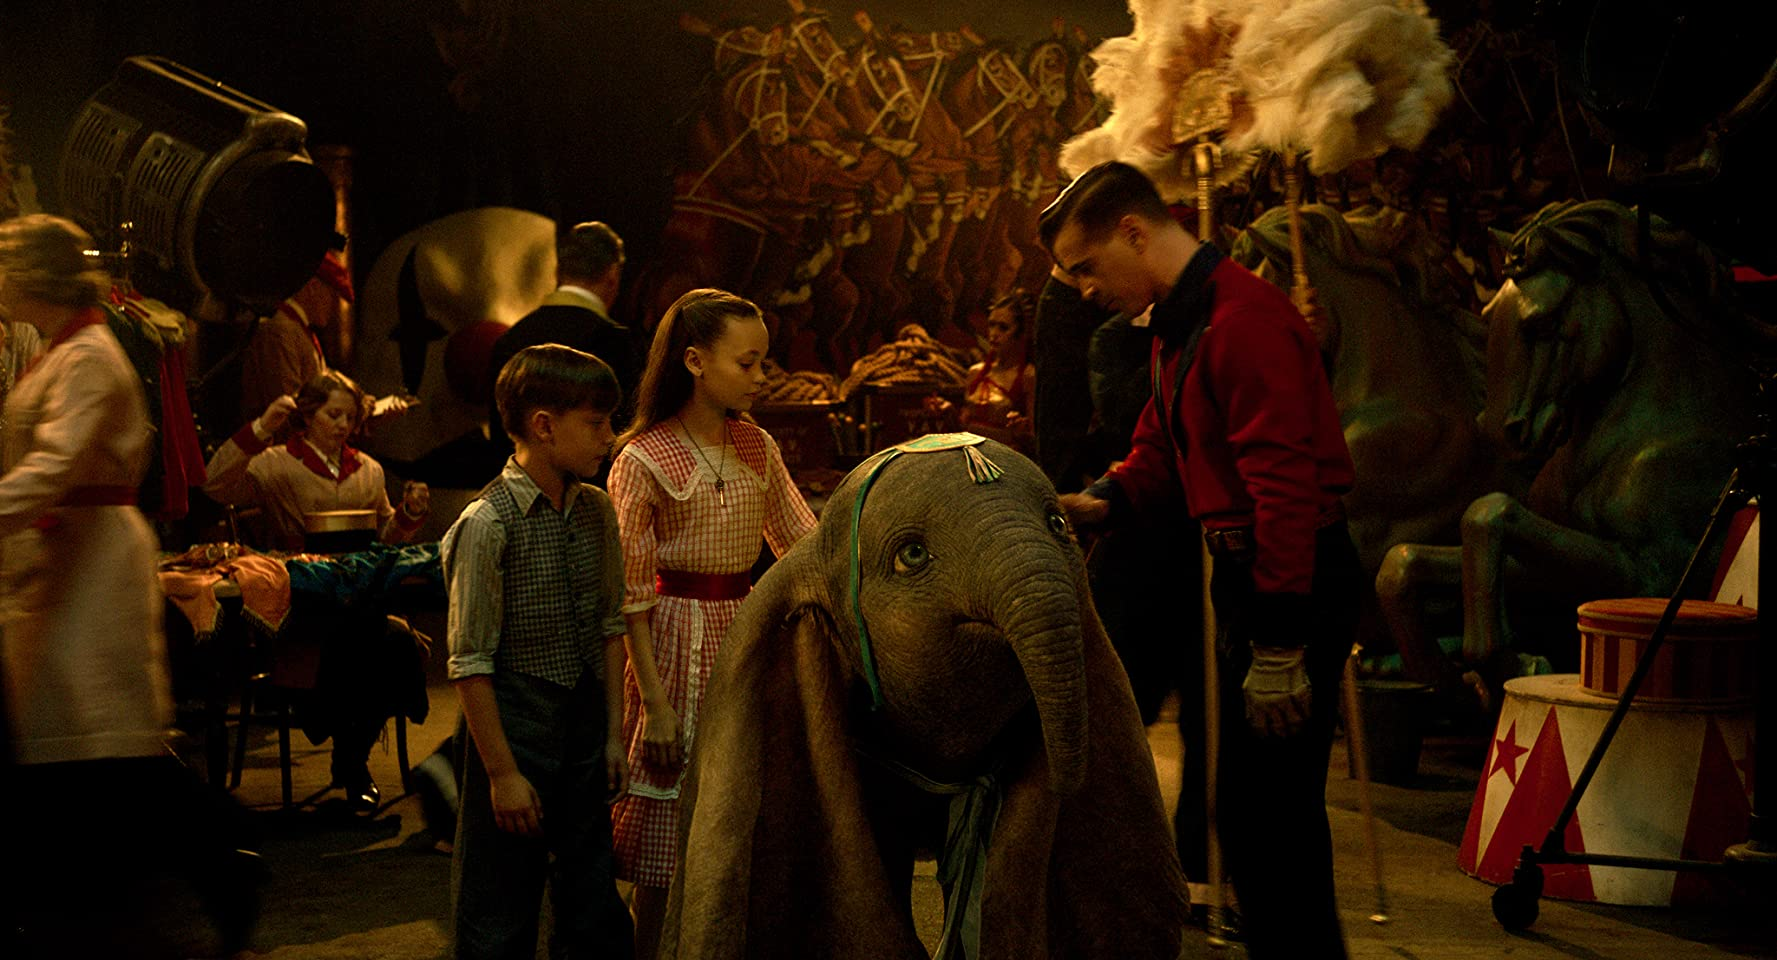 Colin Farrell, Finley Hobbins, and Nico Parker in Dumbo (2019)